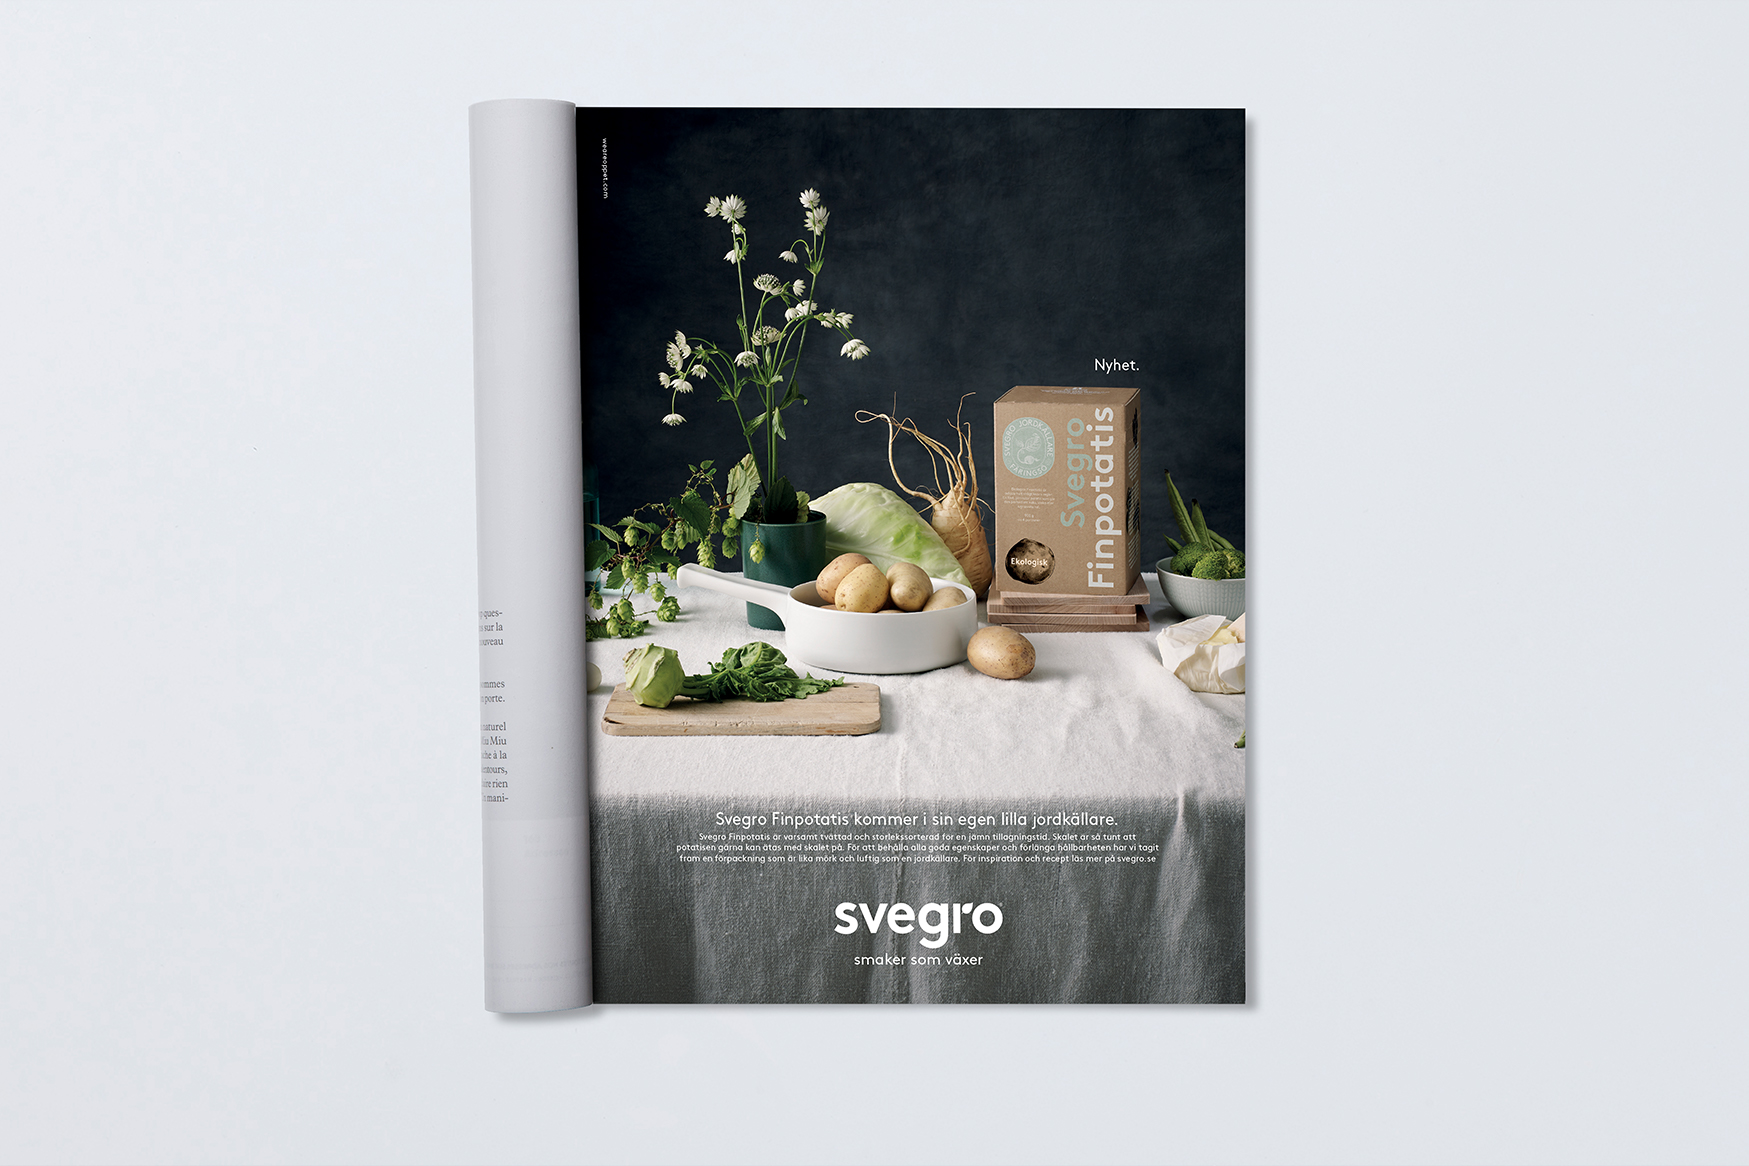 Svegro Finpotatis | Din egen lilla jordkällare | Advertising by We are ÖPPET